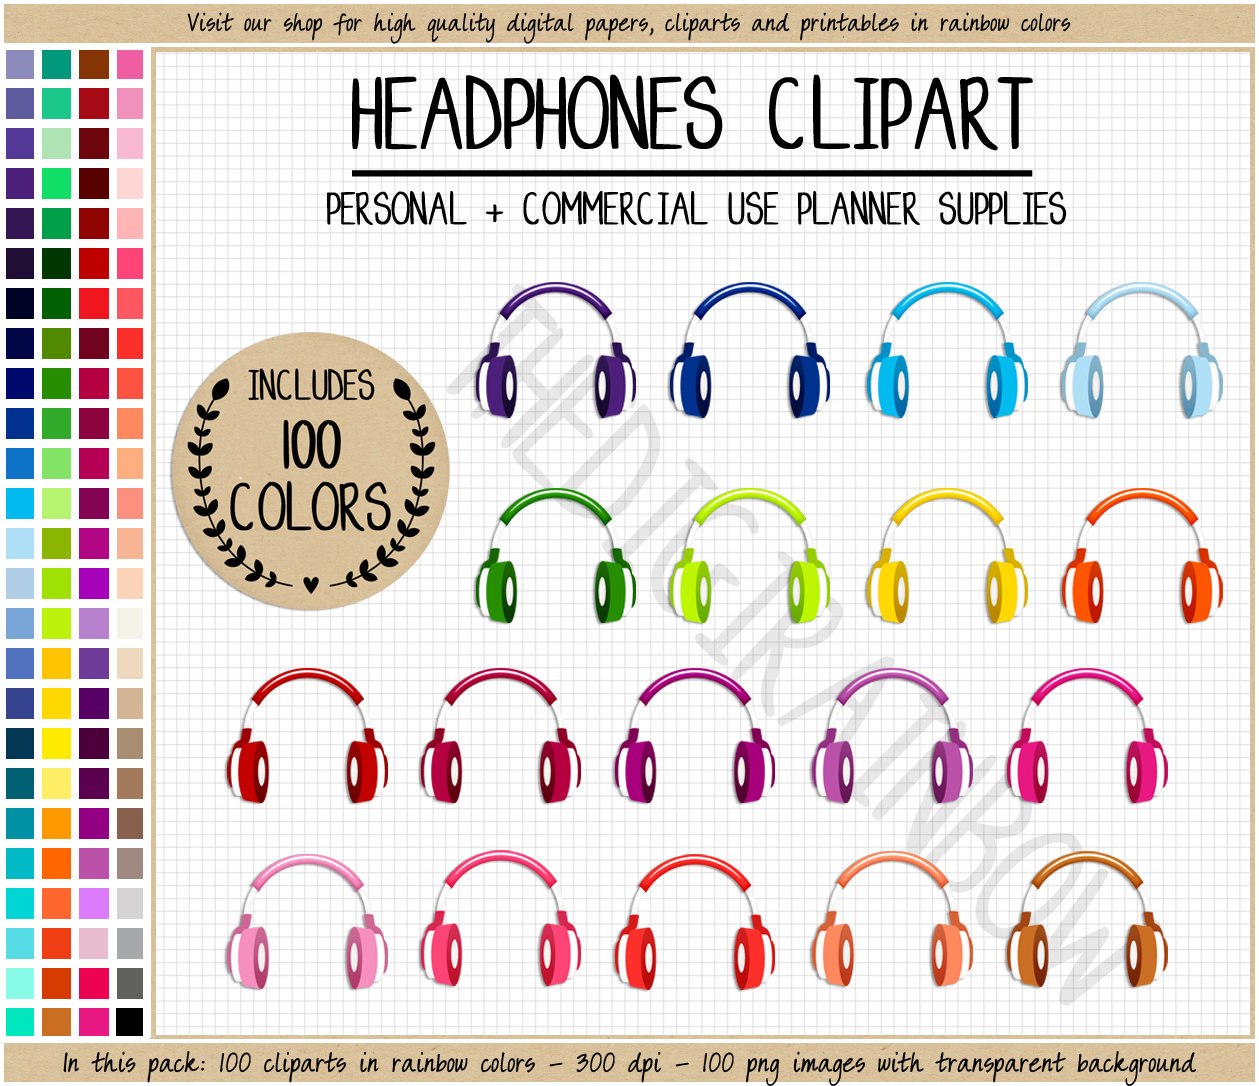 Headphone clipart colorful Rainbow SALE stickers 100